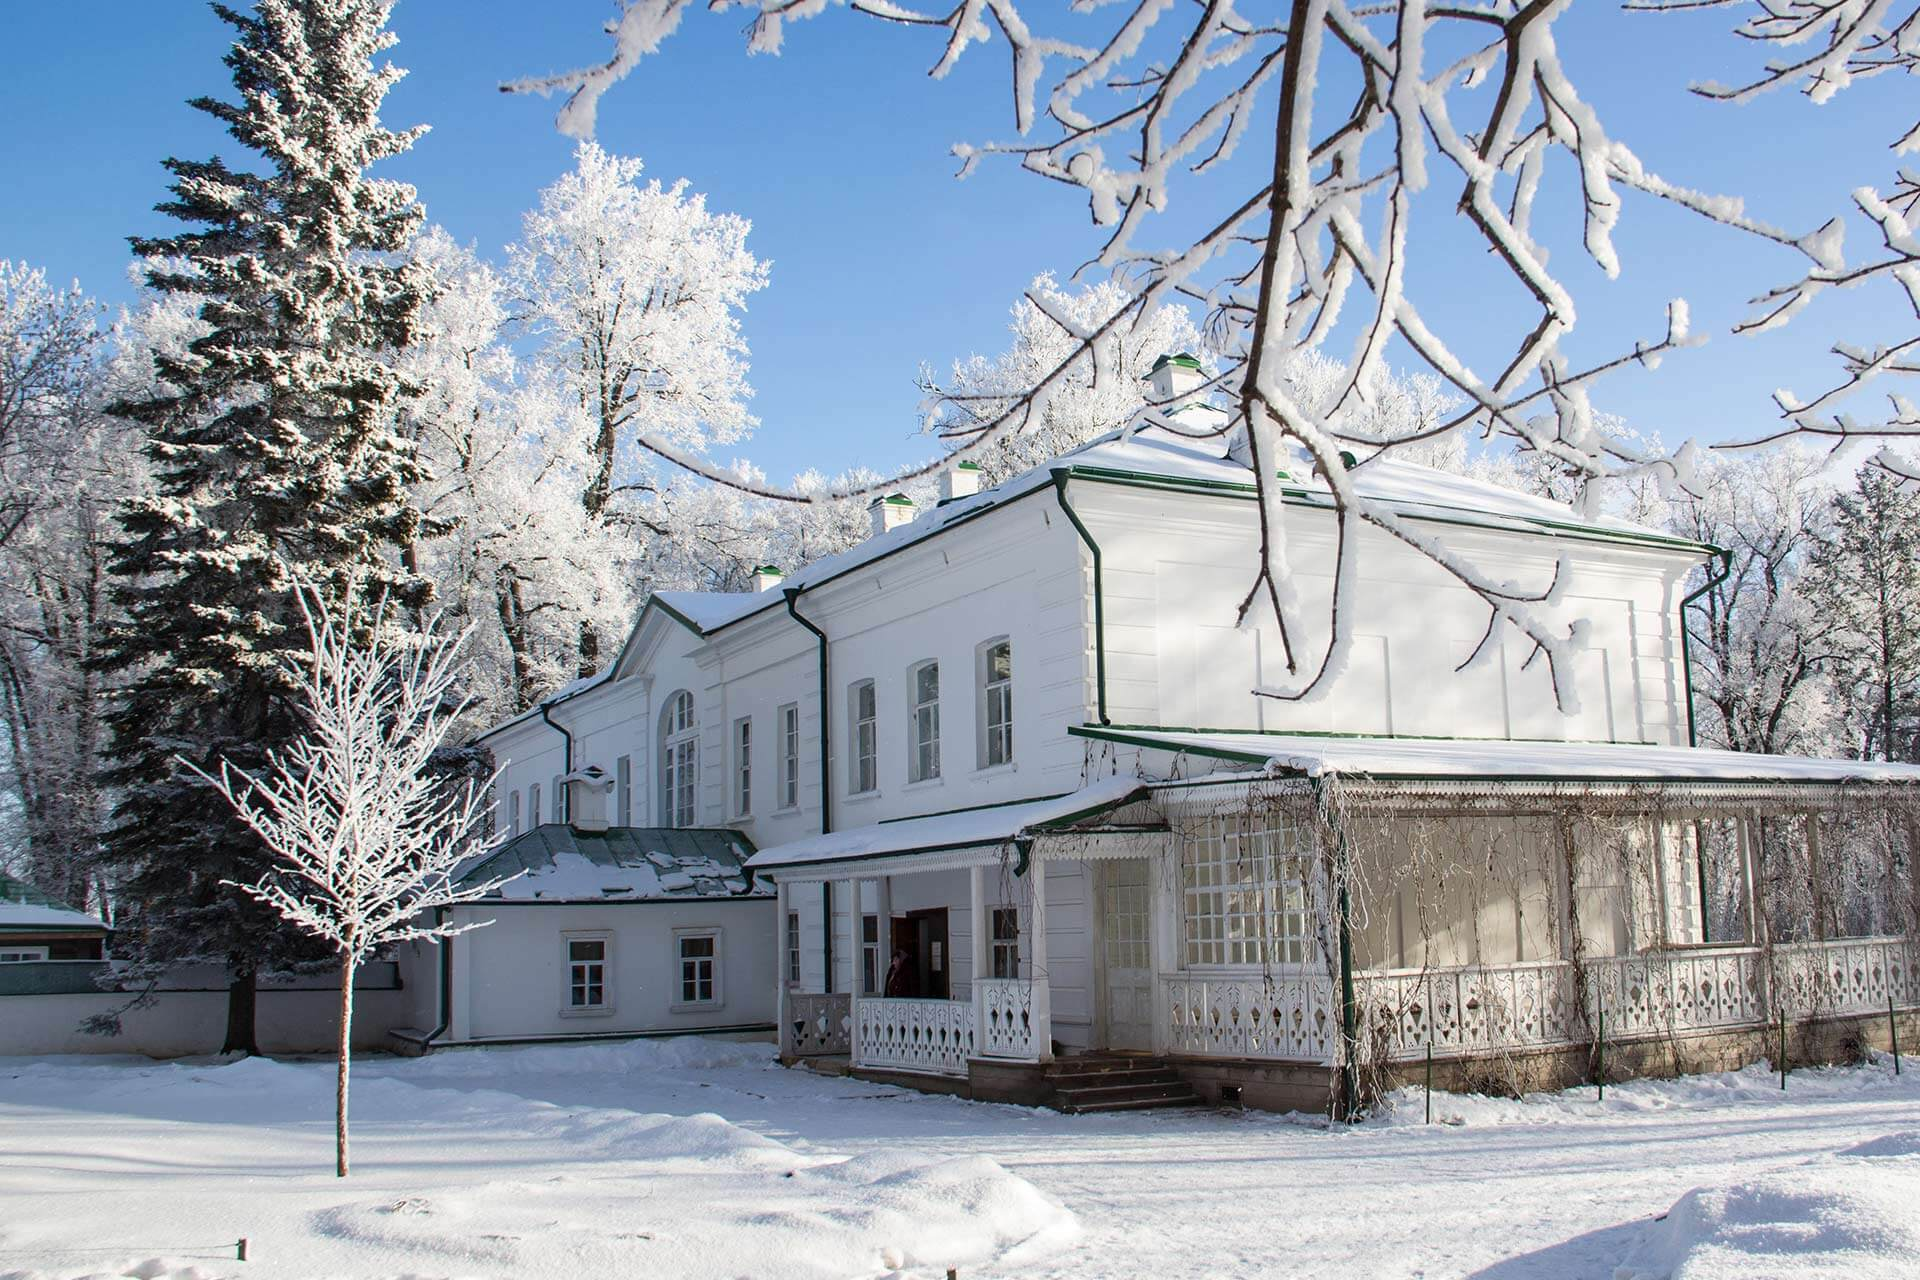 A white two-story mansion in winter